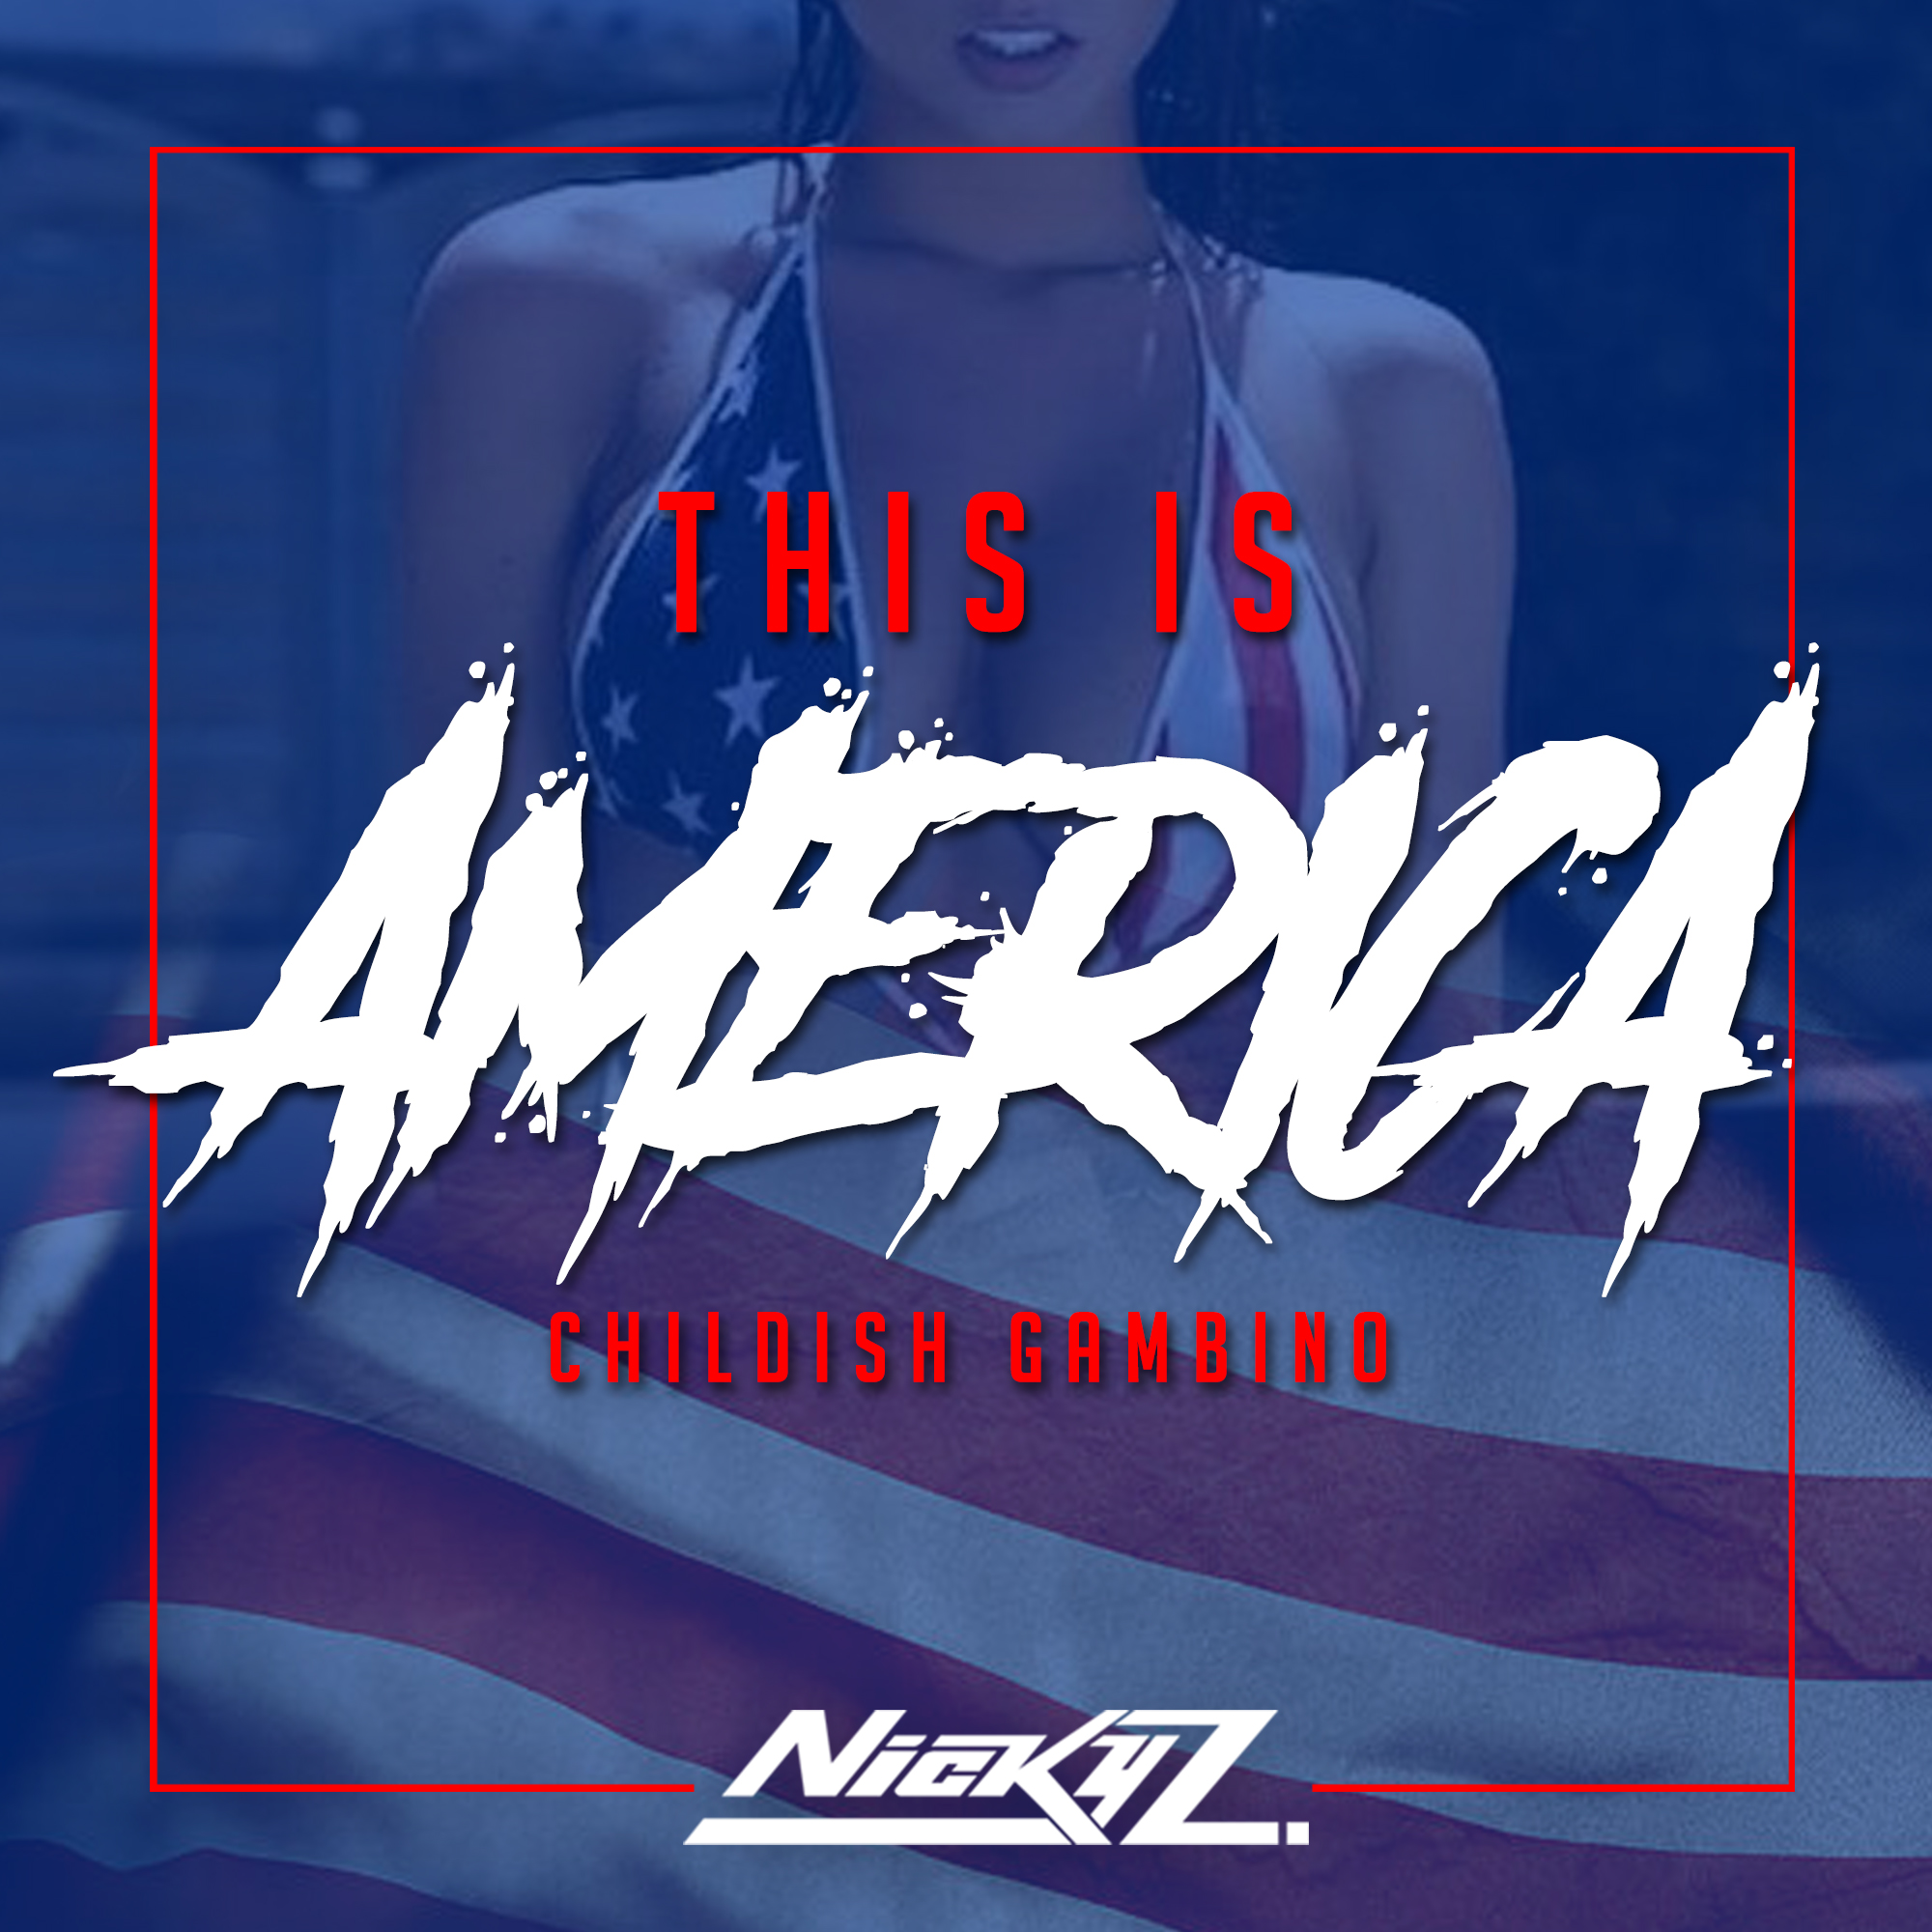 Childish Gambino - This Is America - (Nicky Z. Remix)